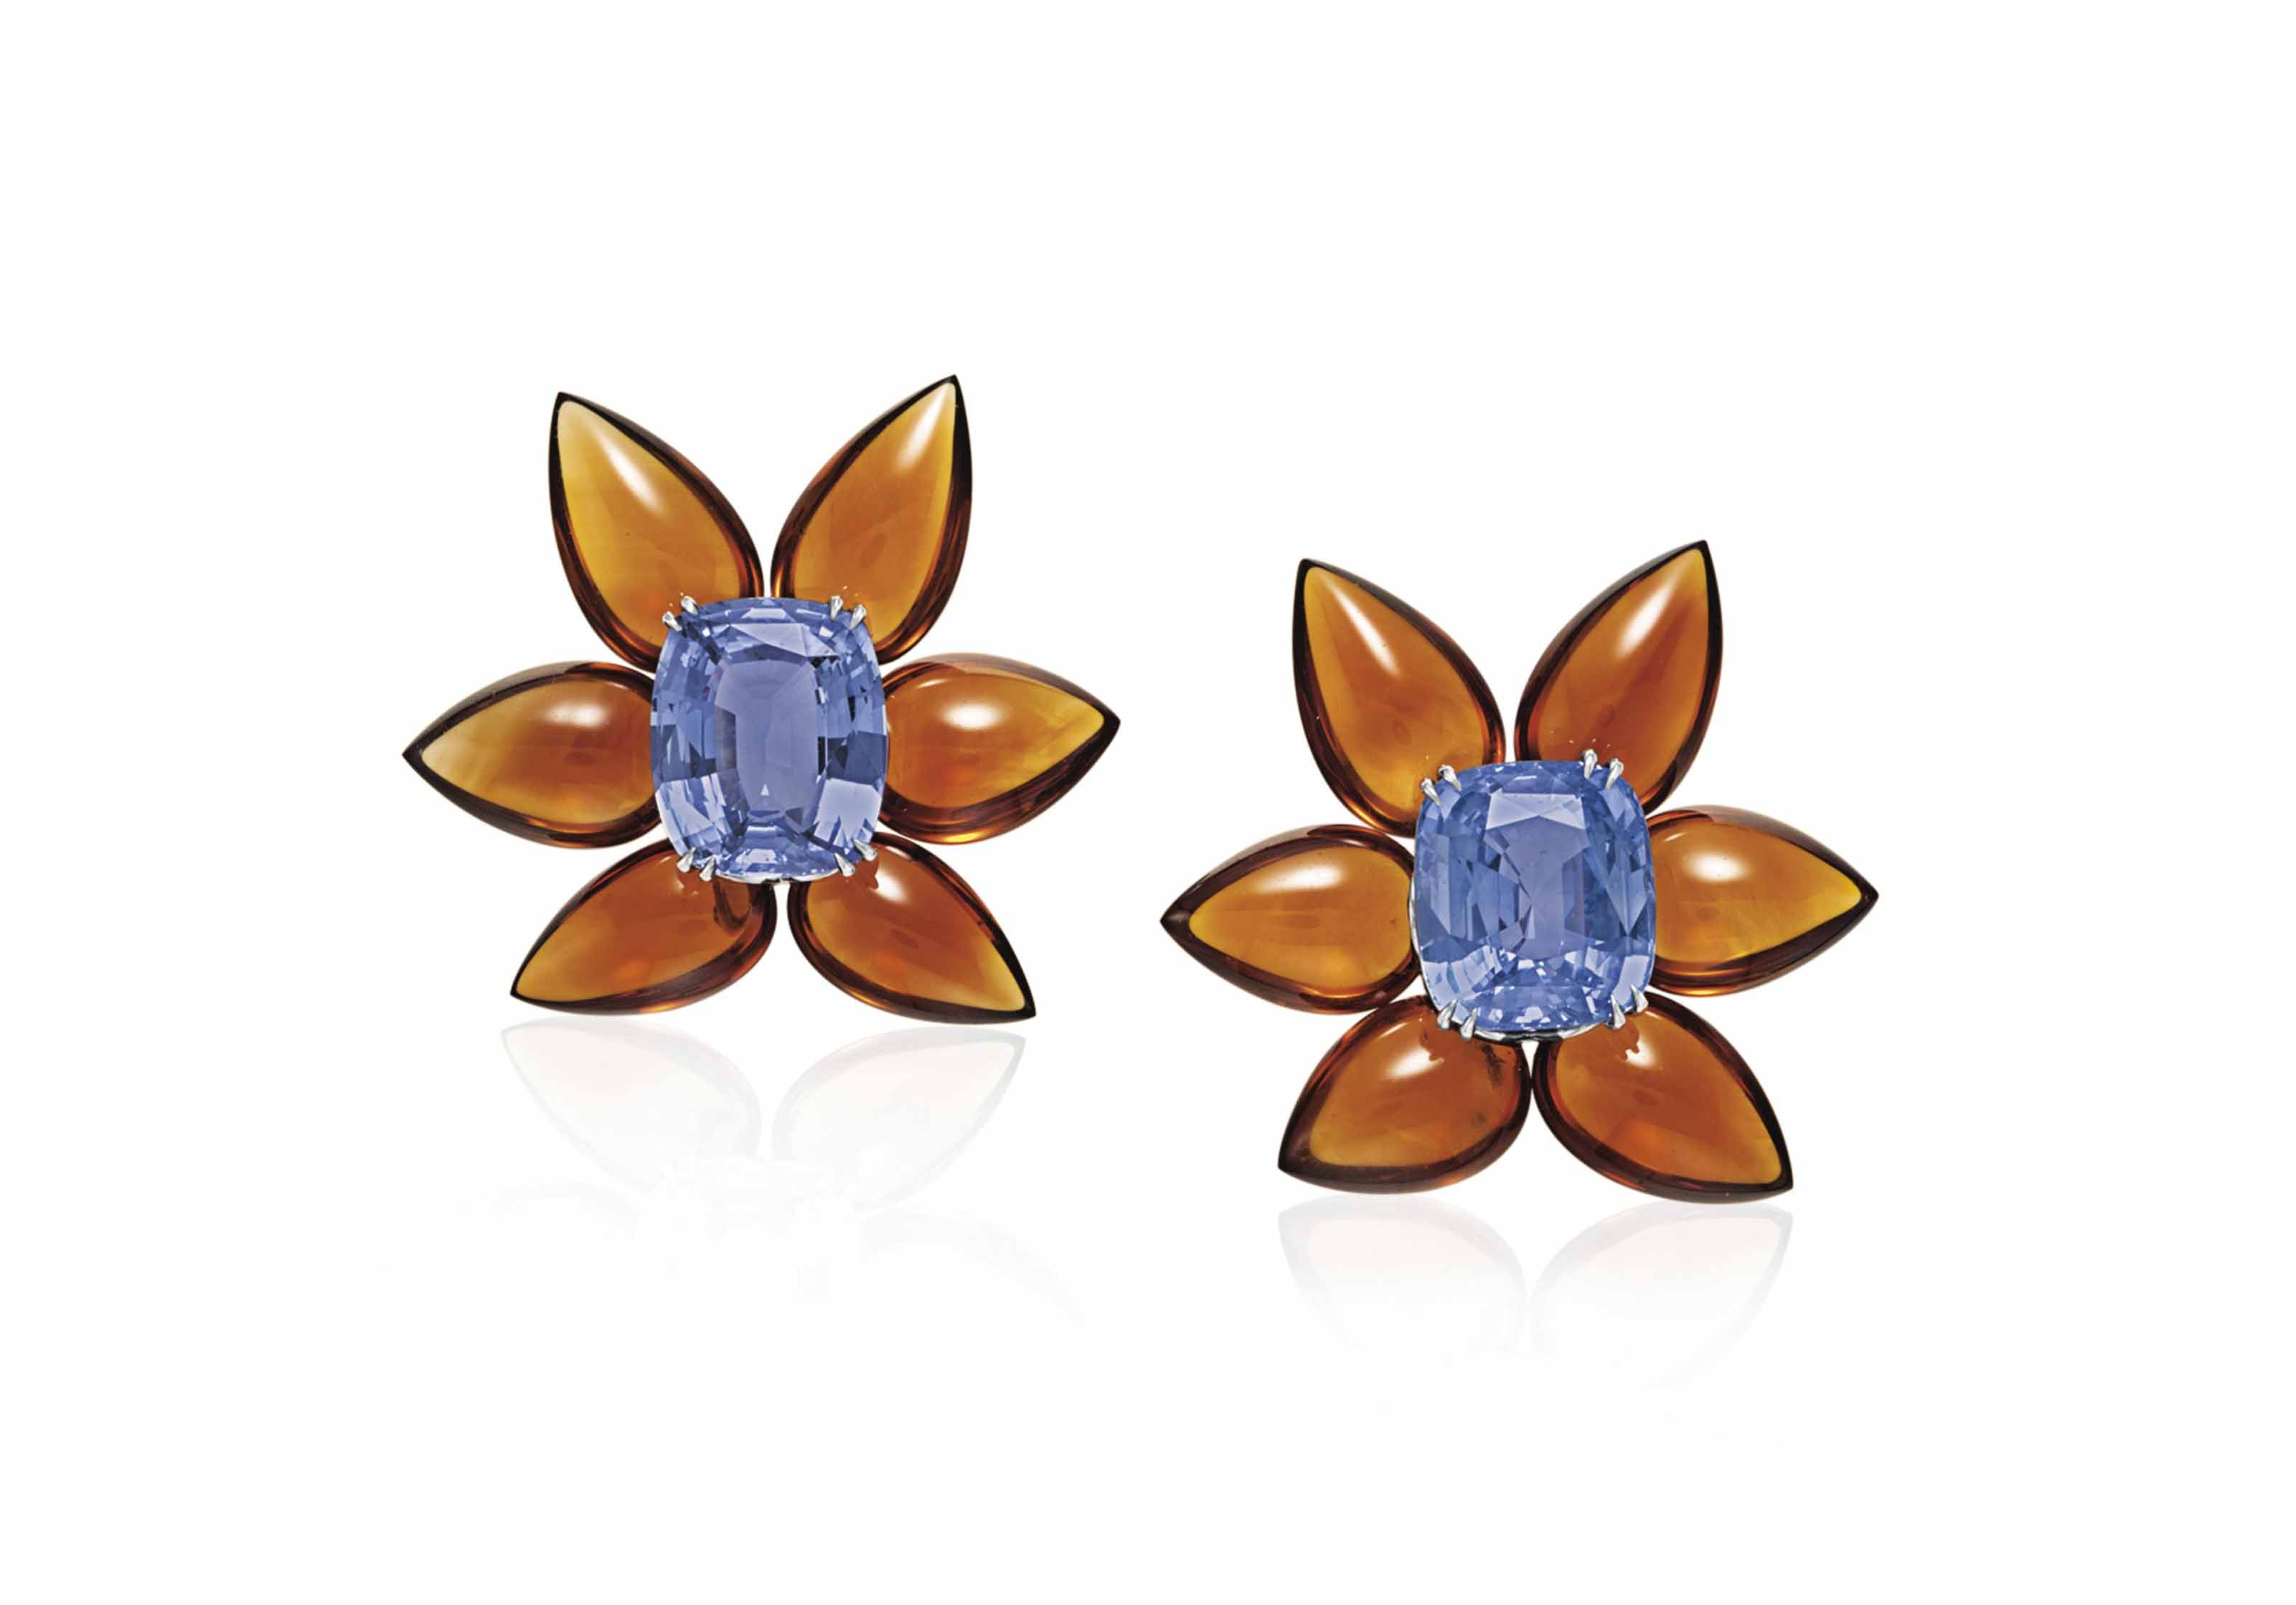 A PAIR OF SAPPHIRE AND CITRINE FLOWER BROOCHES, BY TAFFIN